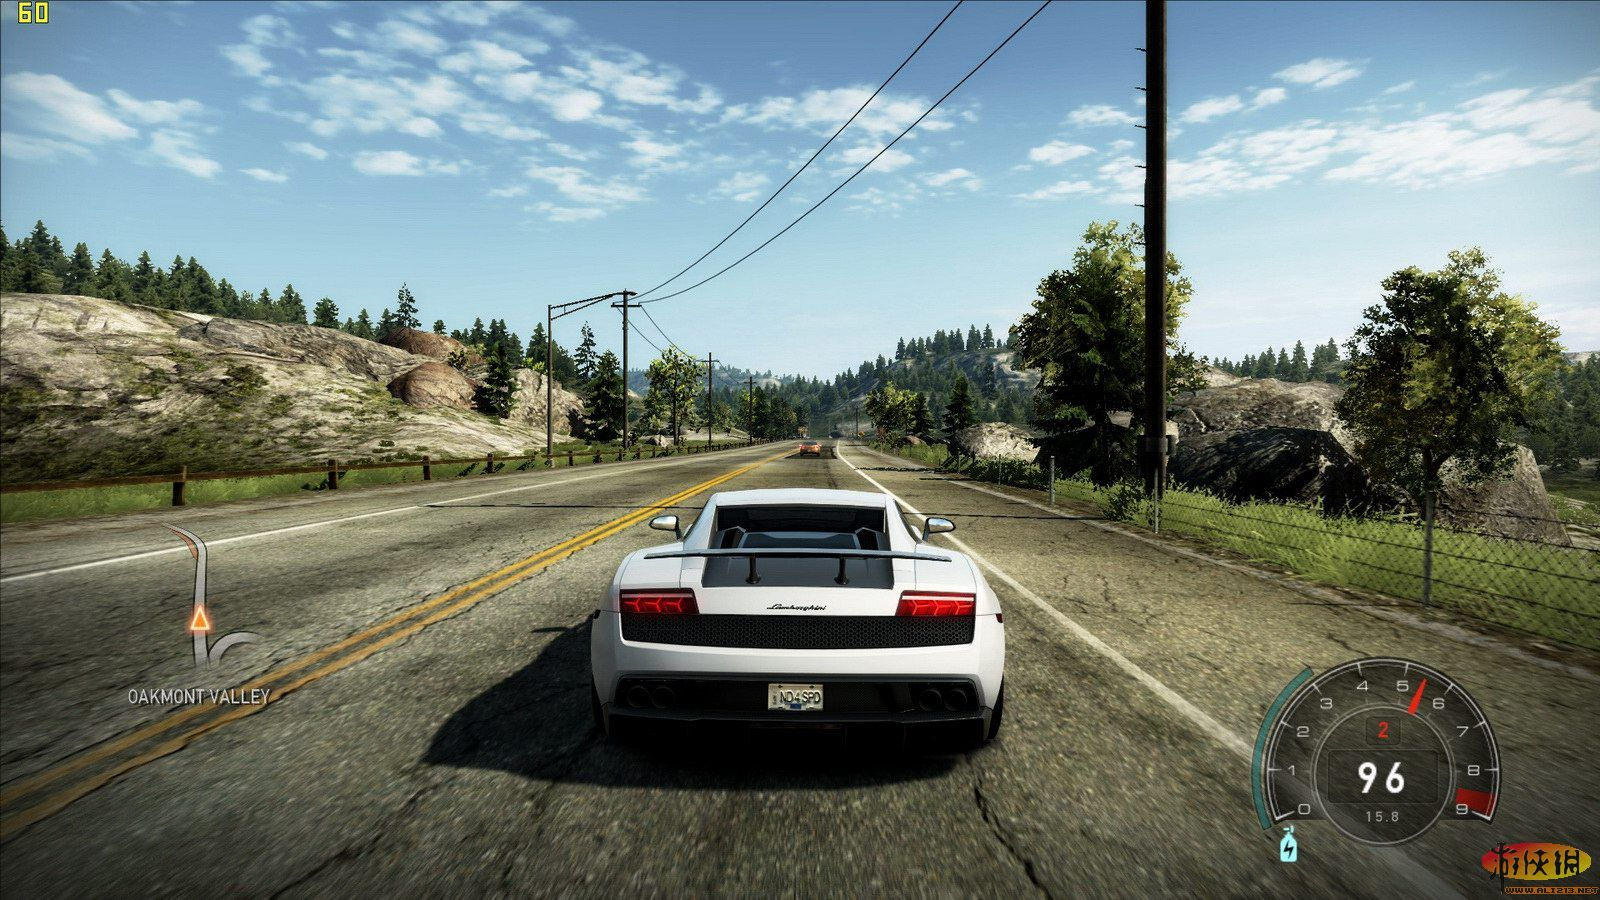 Ali213 need For speed Hot Pursuit 3 crack